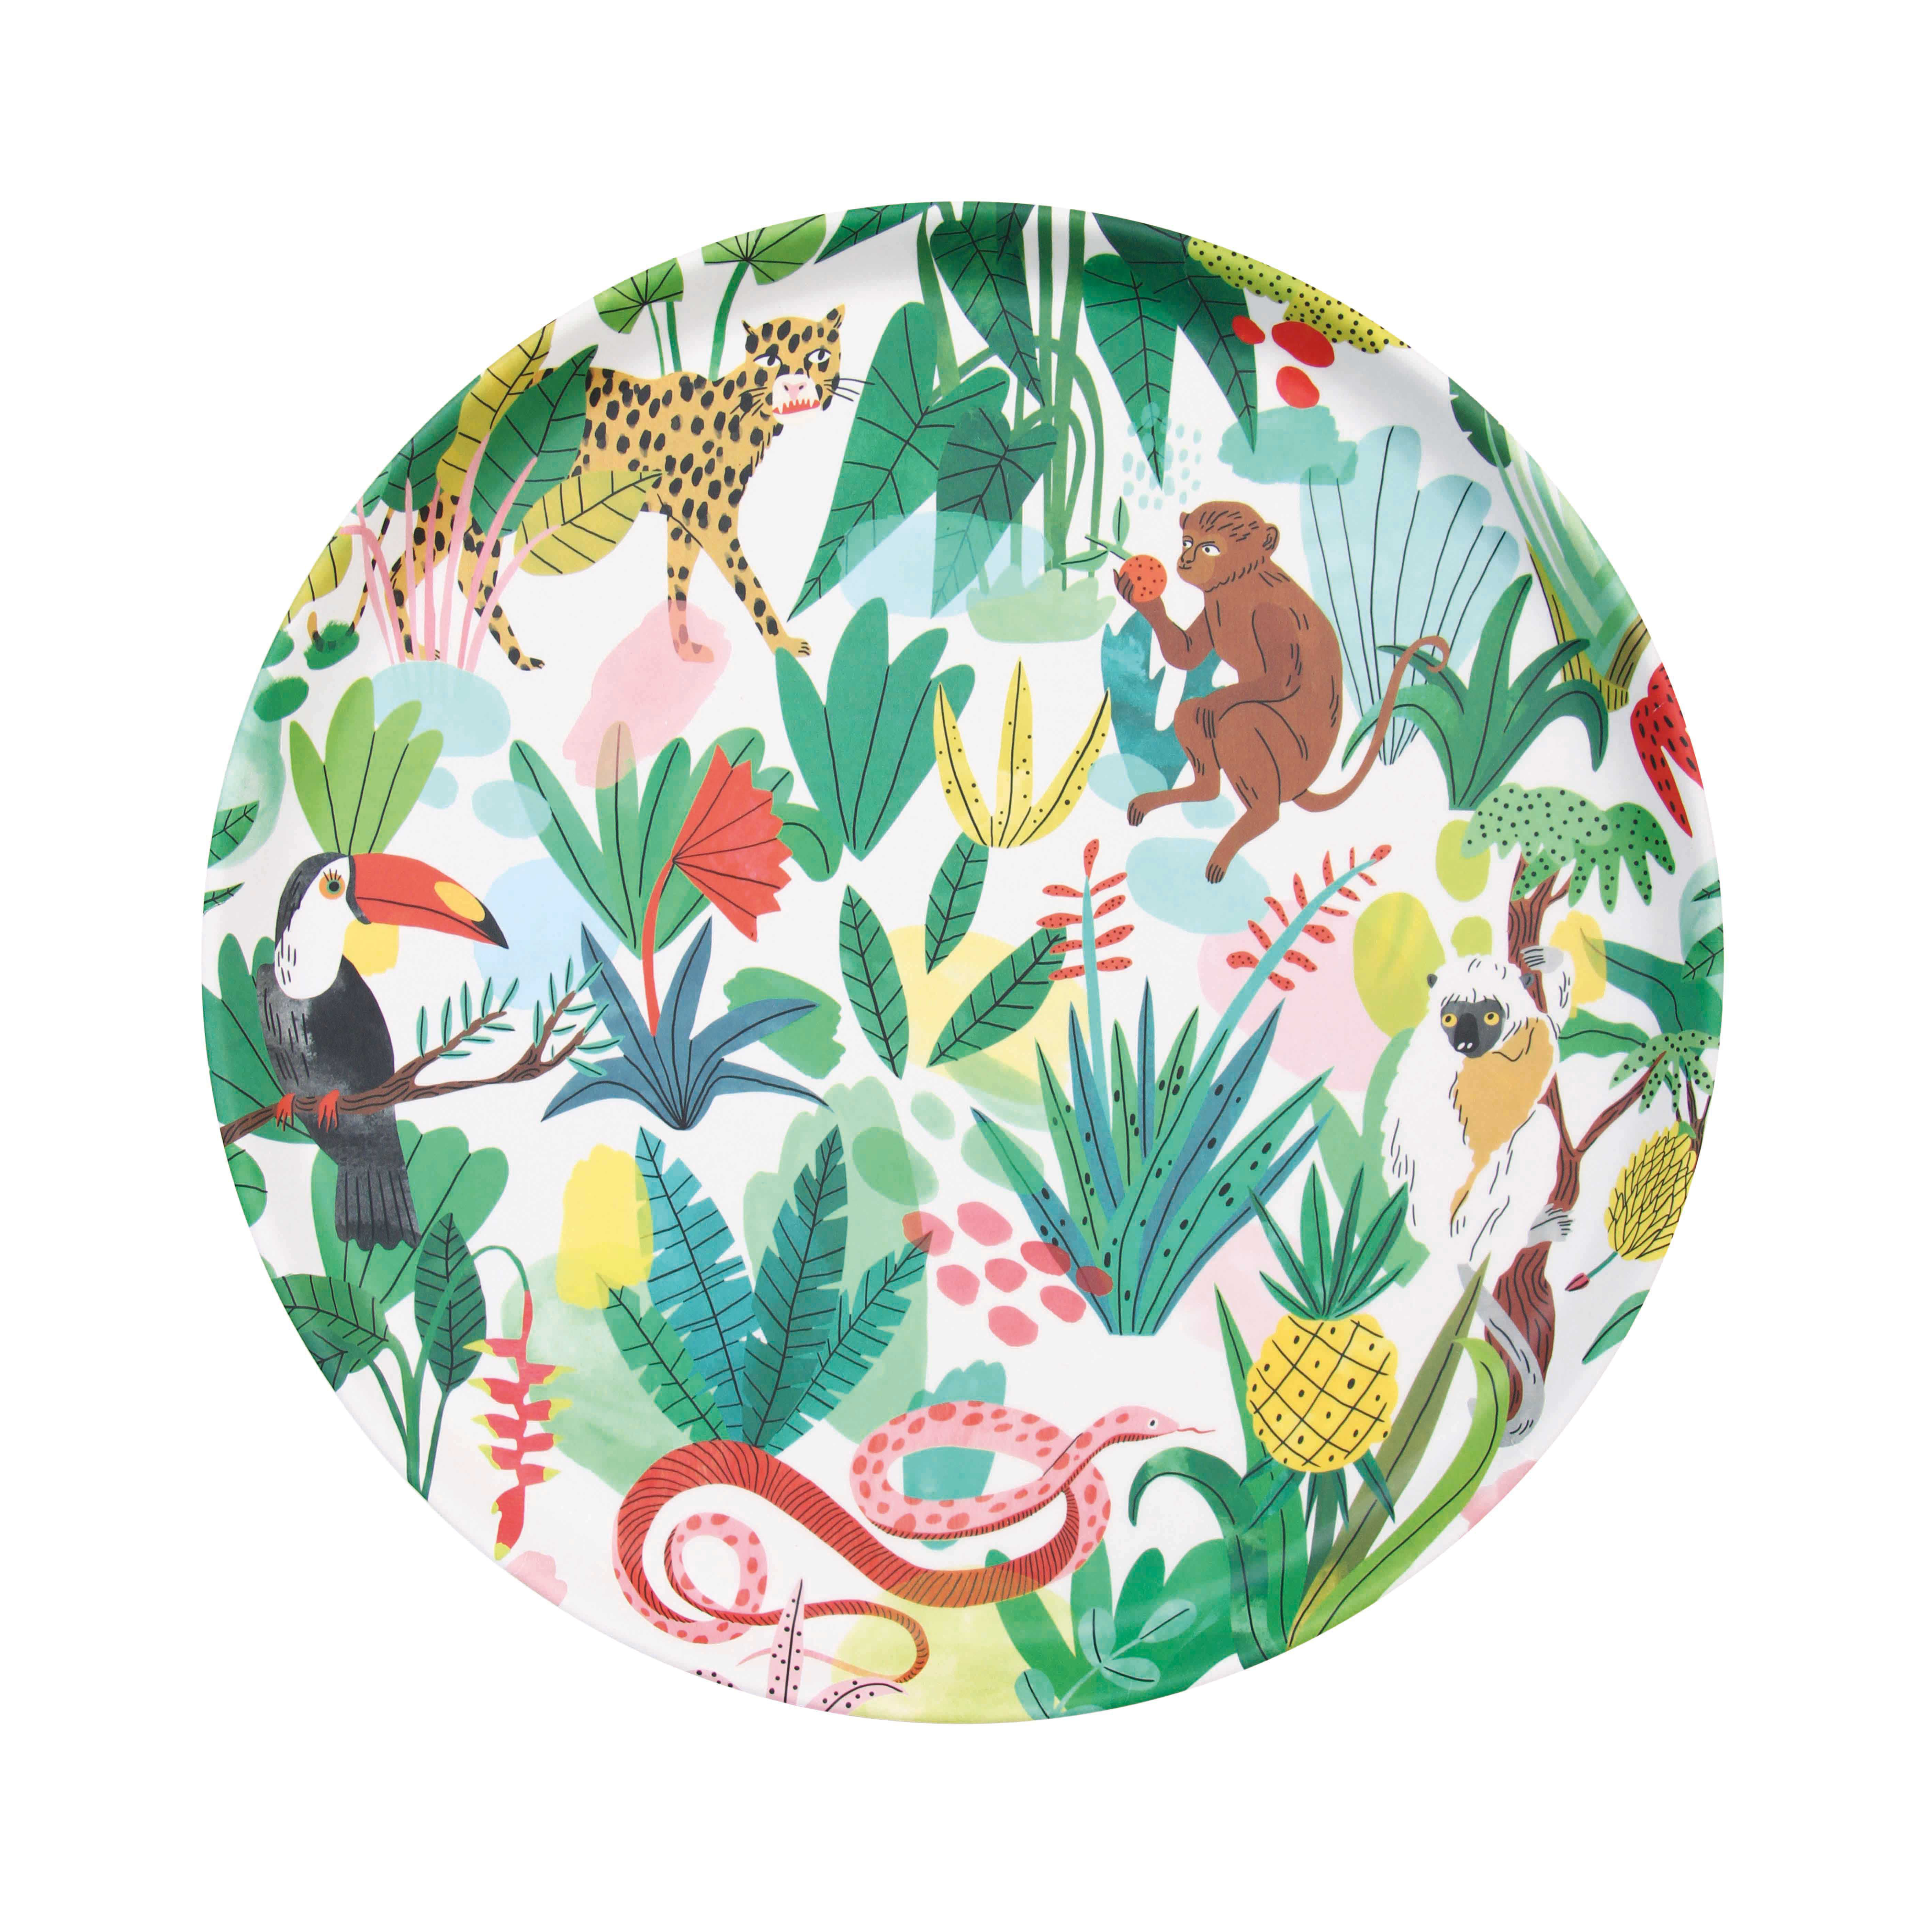 Tableware - Trays - Bodil Tray - / Ø 32 cm / Bamboo by & klevering - Tropical jungle - Bamboo fibre